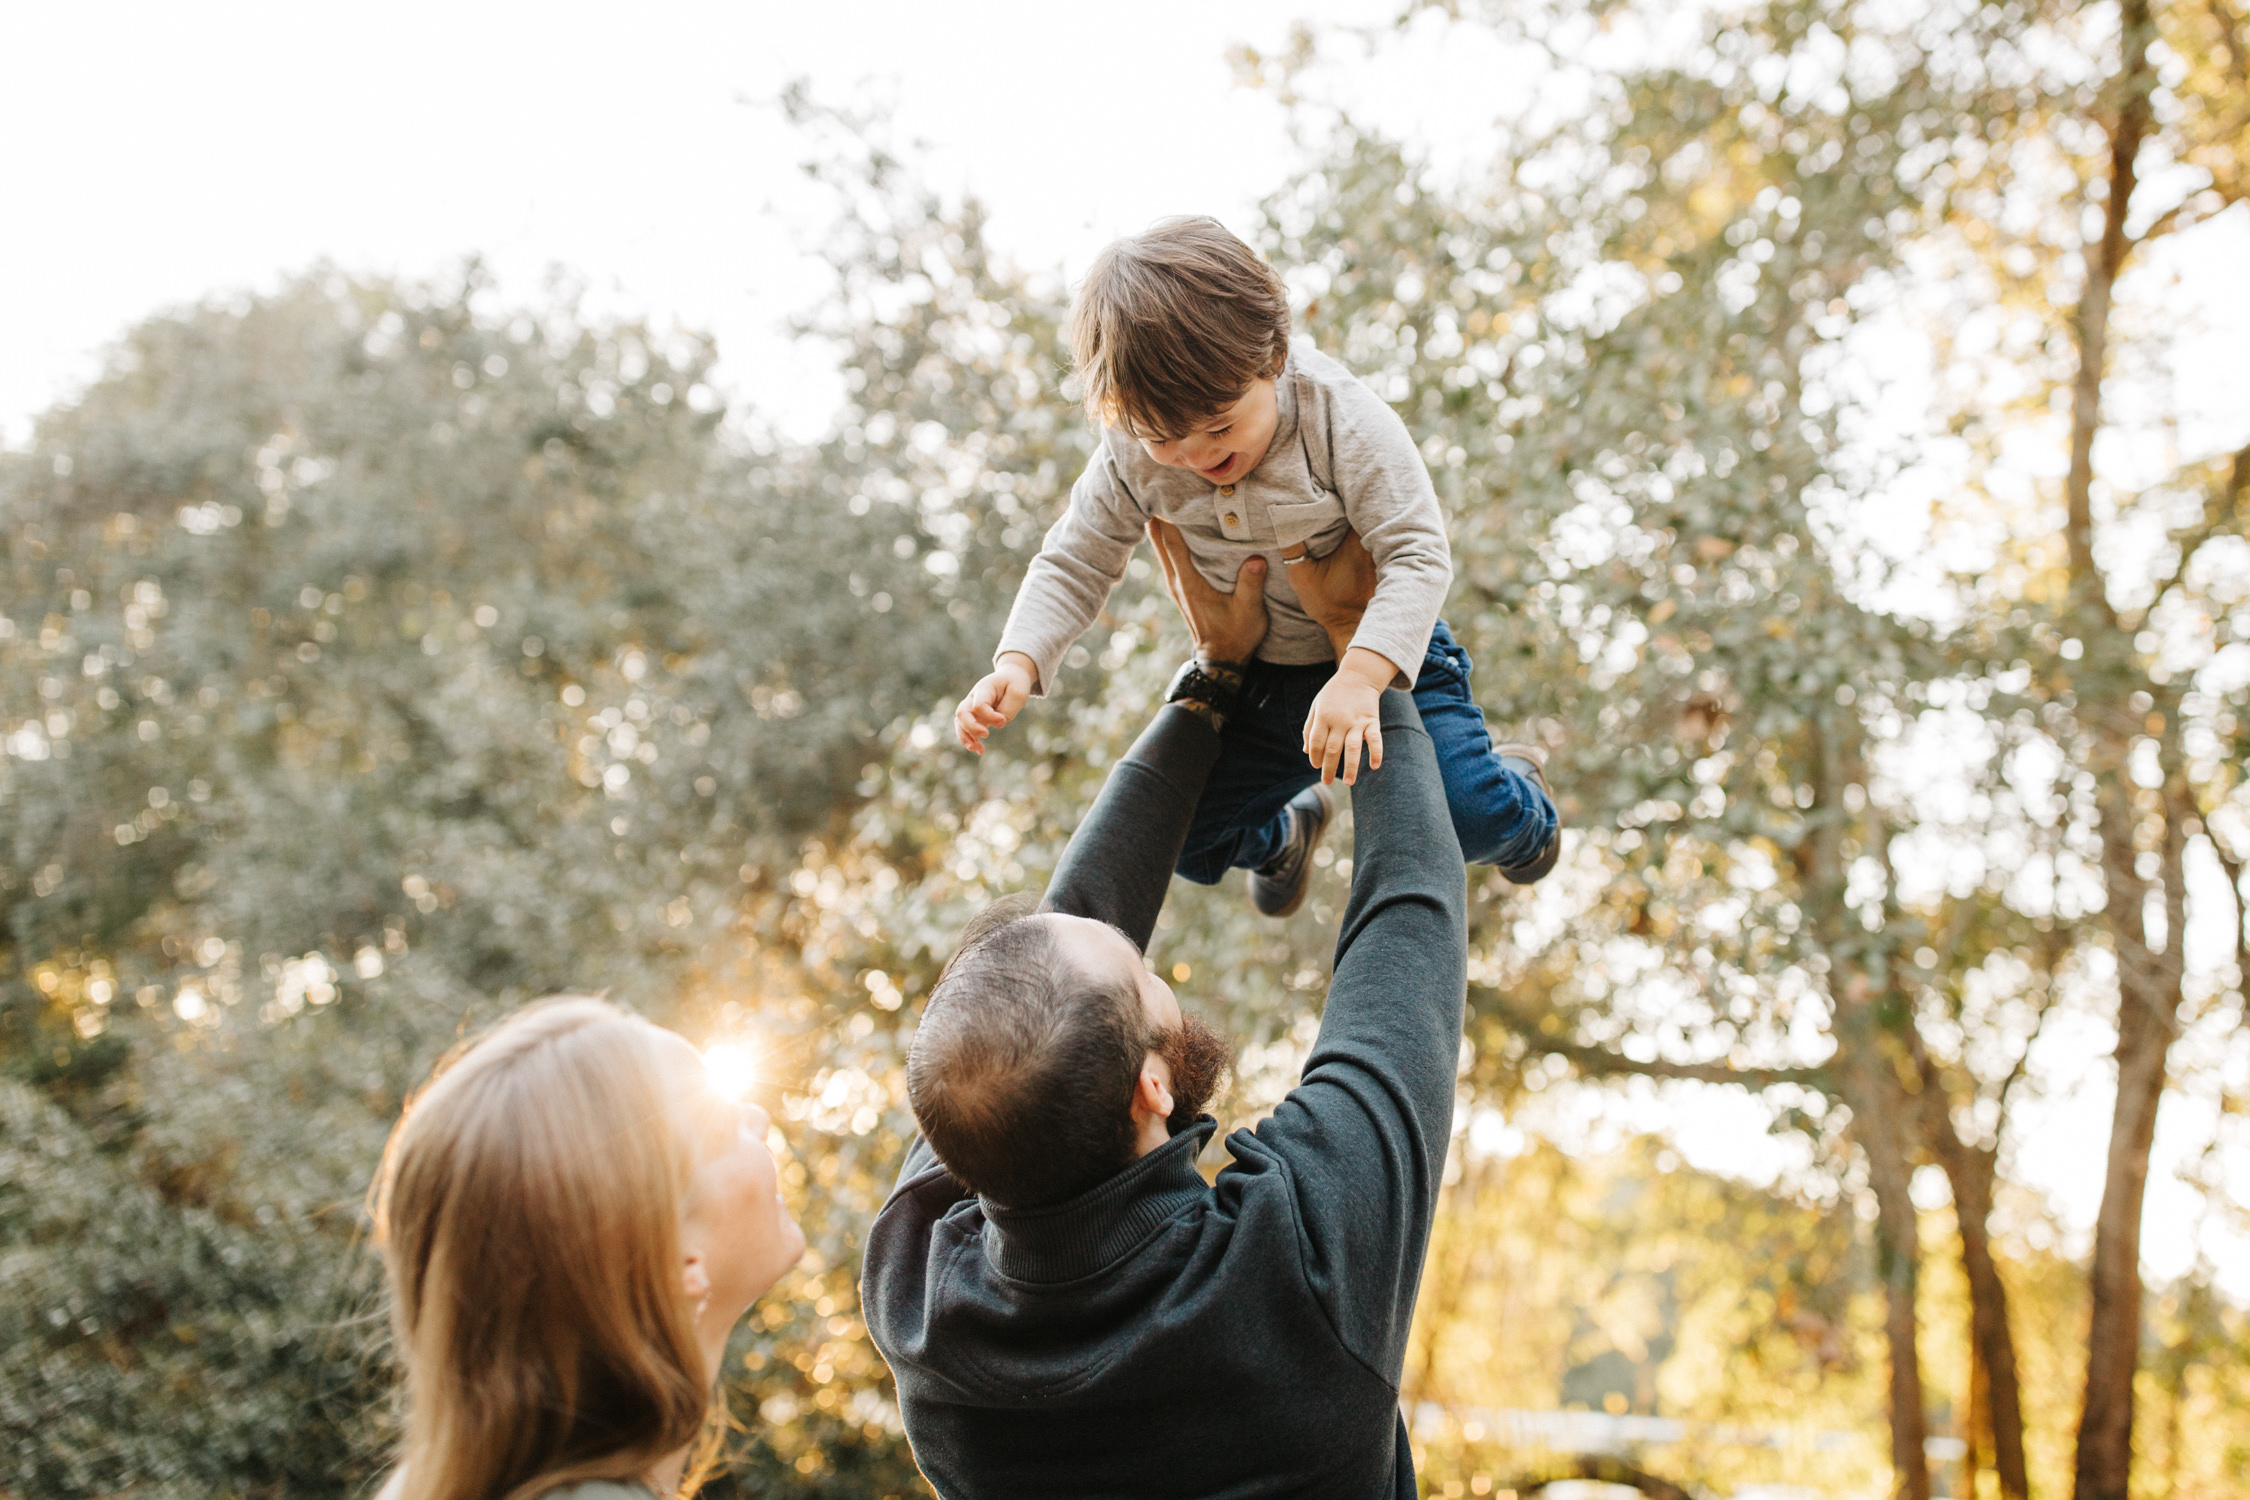 tampa-family-lifestyle-photographer-candid-natural-17